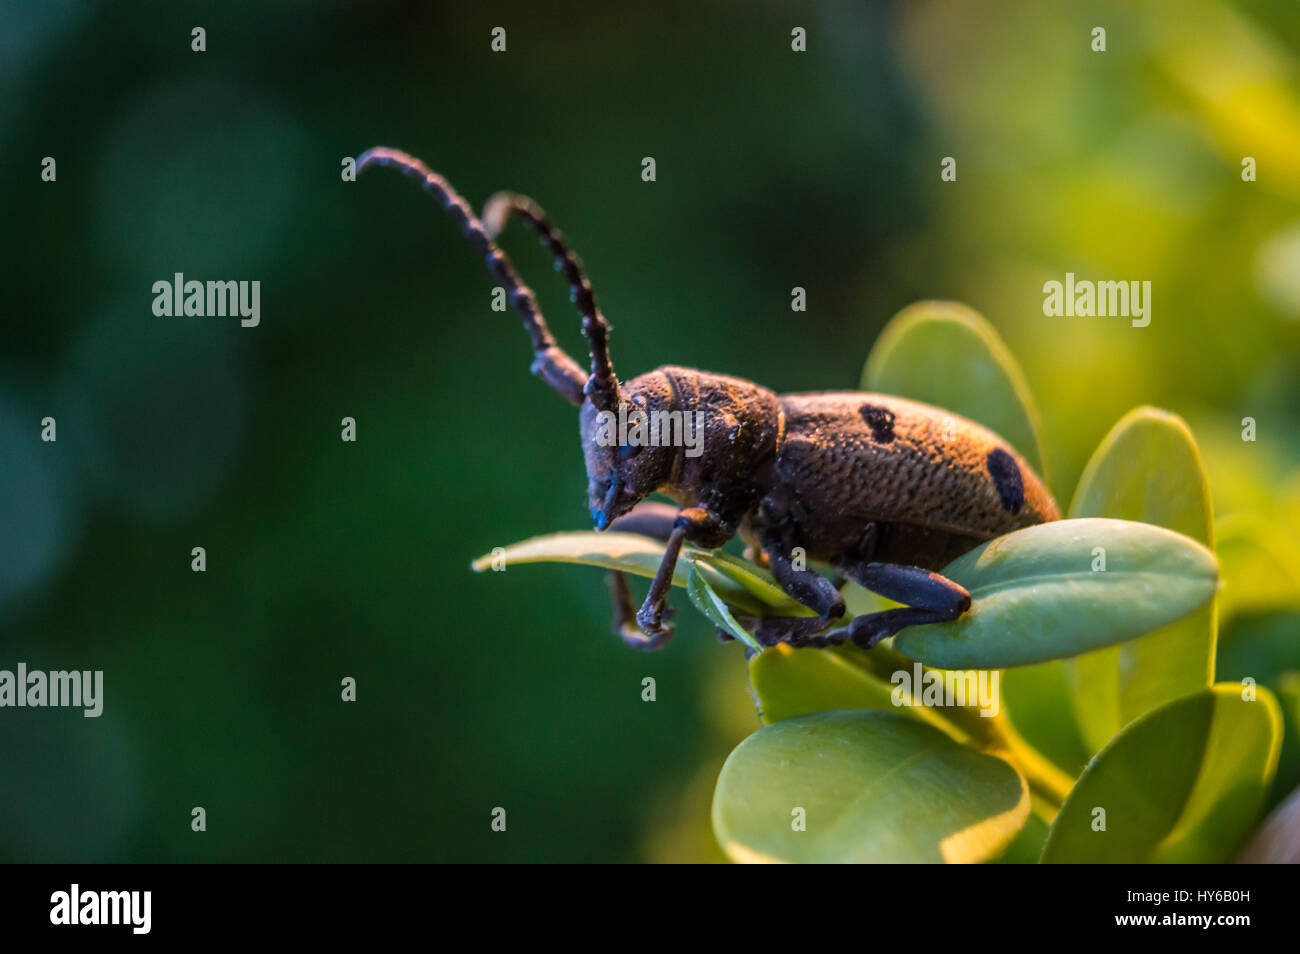 Brown beetle on leaf macro shot in color. - Stock Image